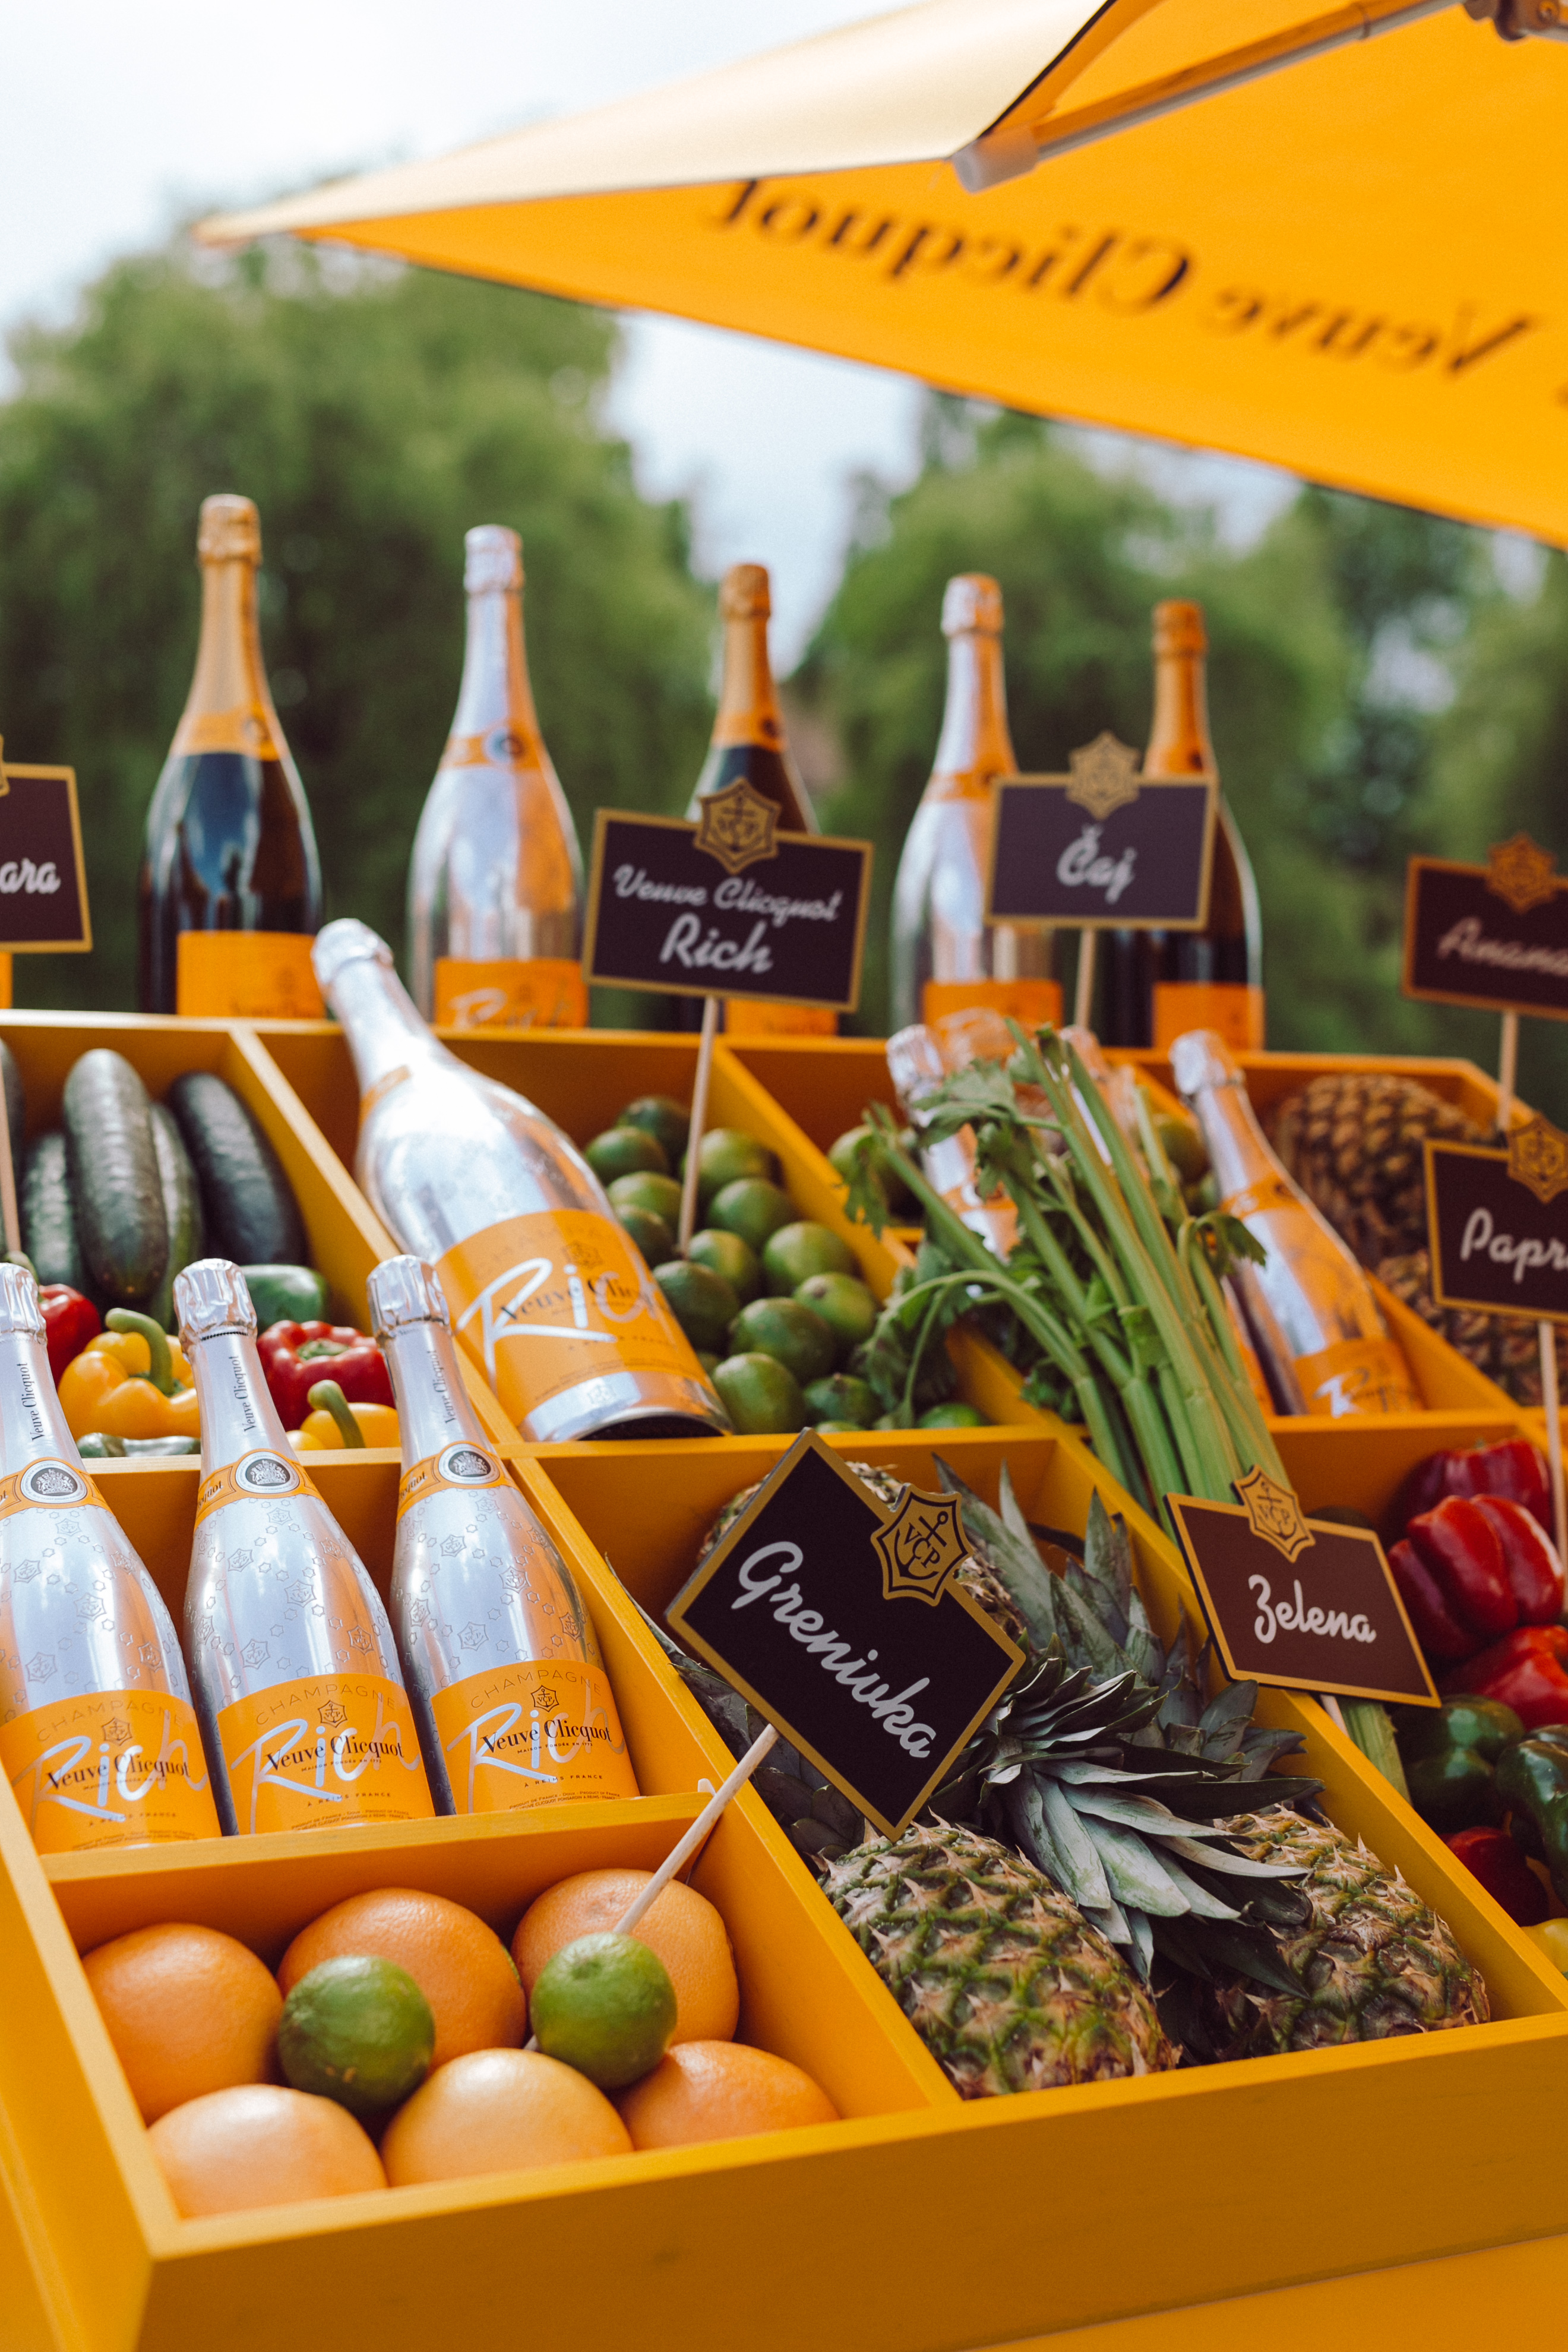 veuve_clicquot_rich_26_5_2016_-_photo_ziga_intihar-110.jpg